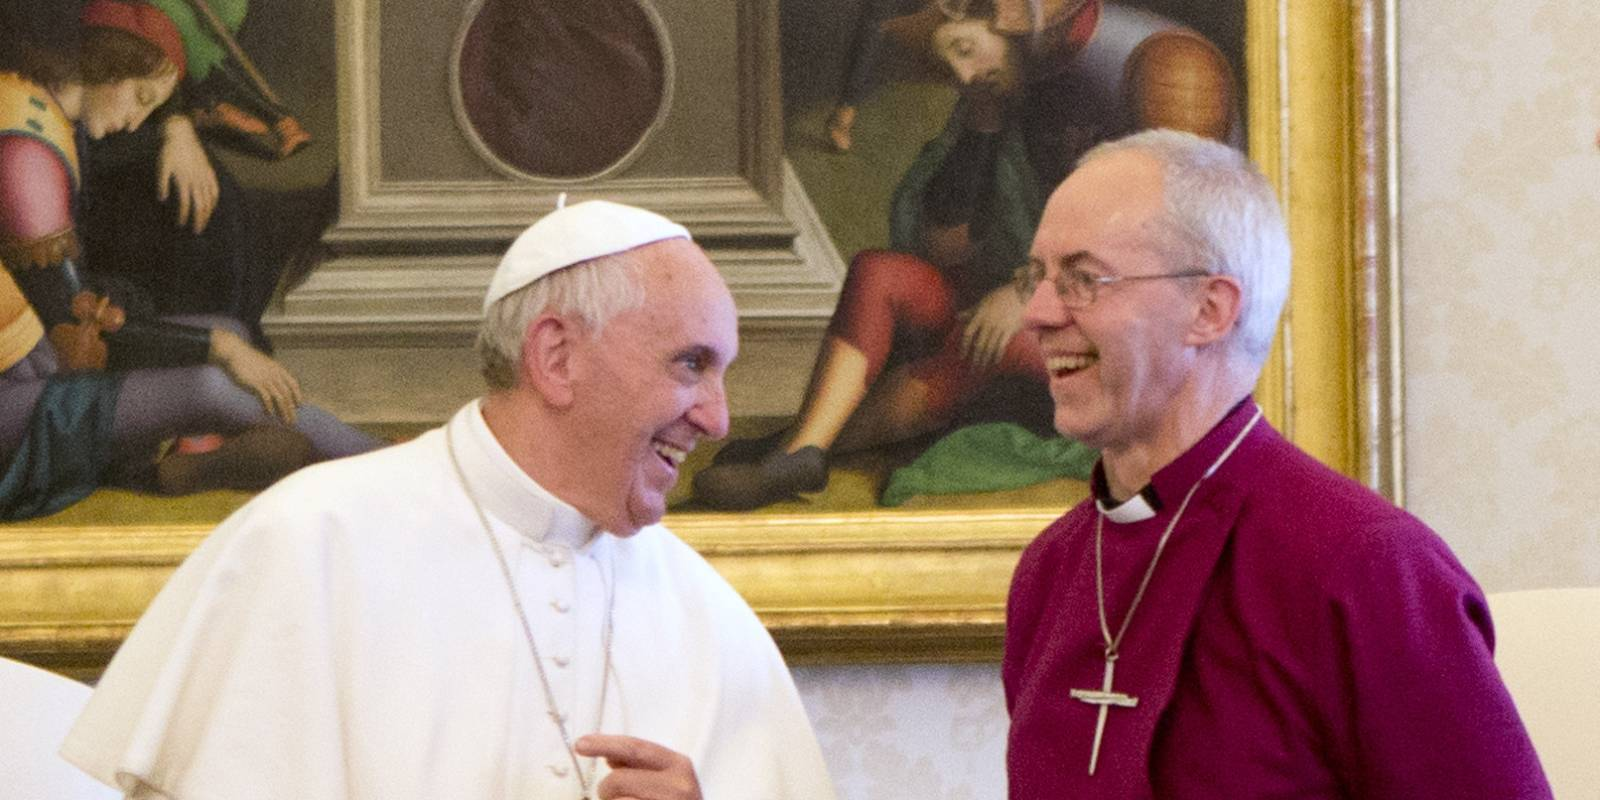 Justin Welby with Pope Francis laughing